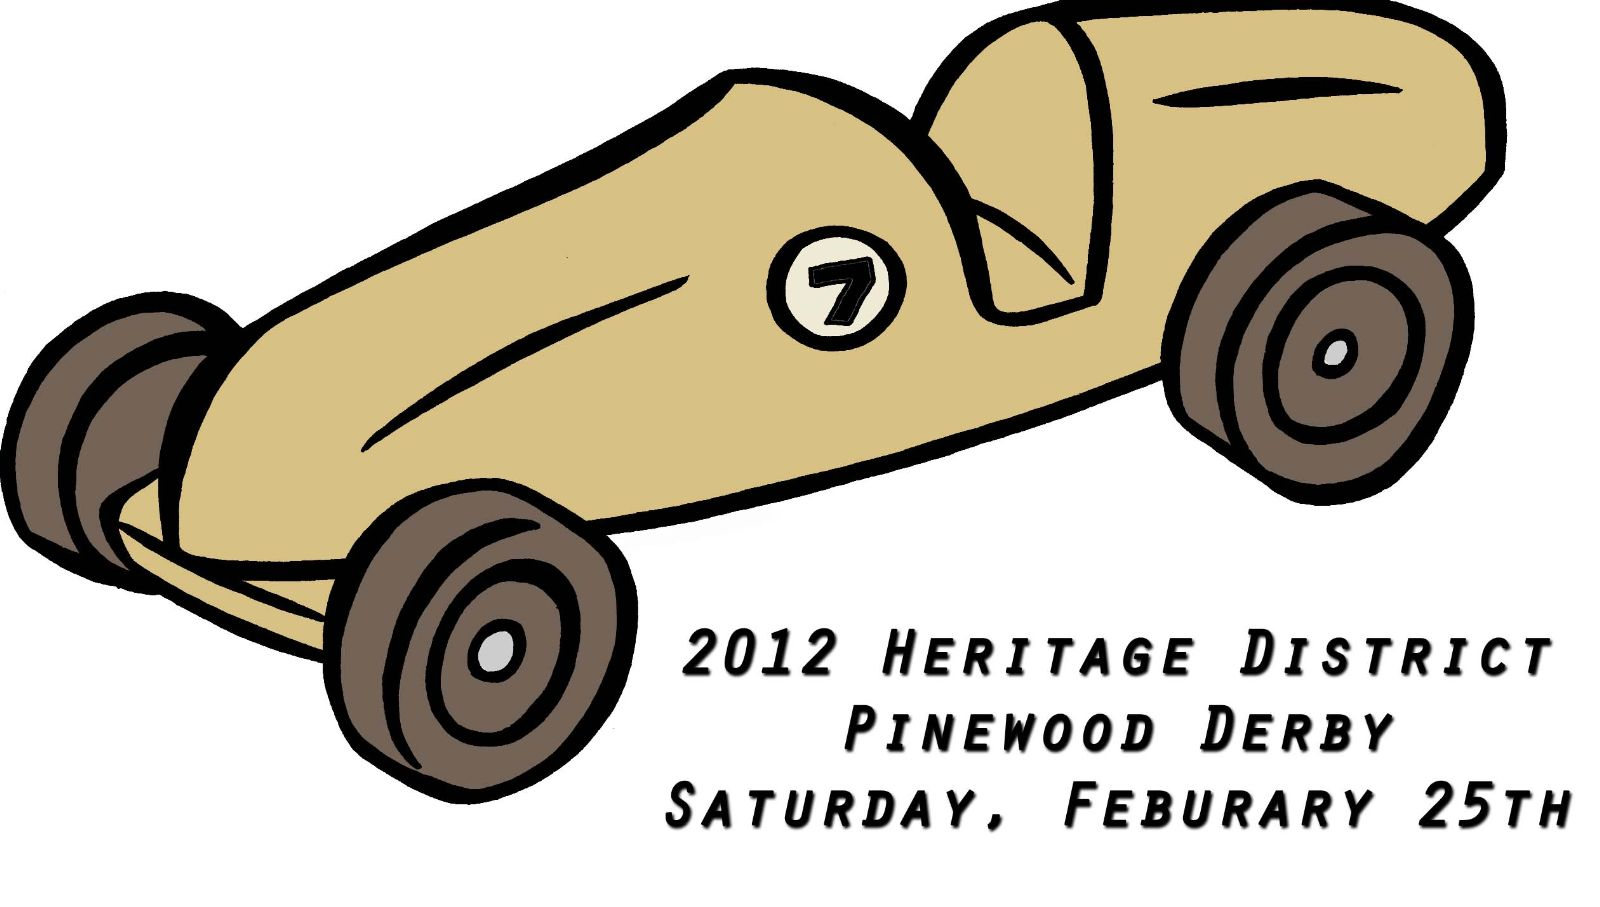 Free Pinewood Derby Clipart, Download Free Clip Art, Free Clip Art.